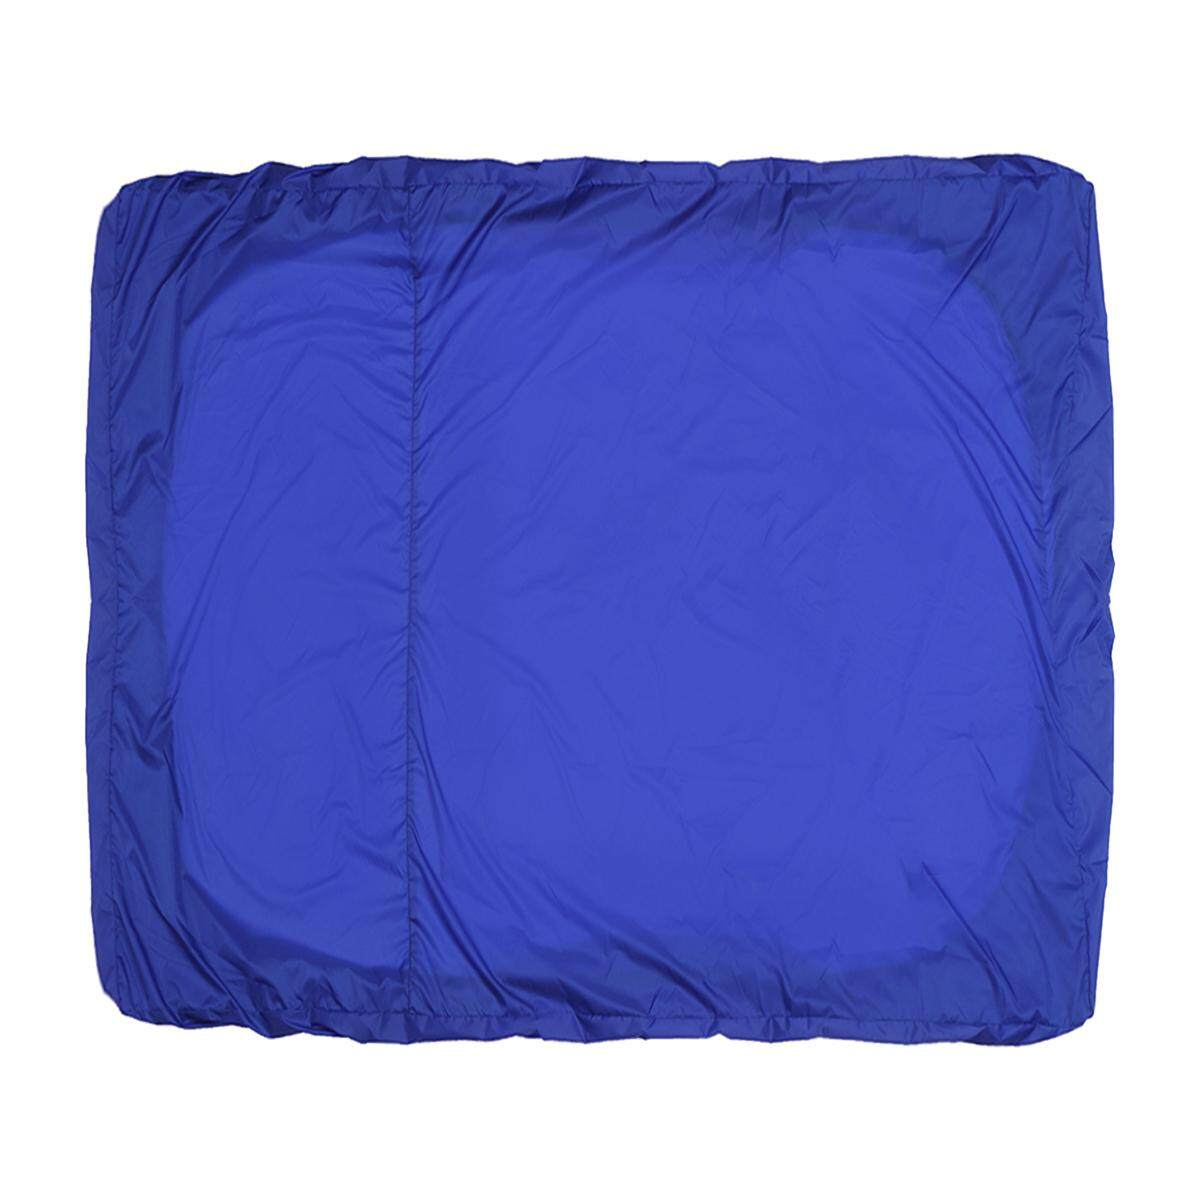 Hot Tub Cover All-Weather Protector - Spa Cover Harsh Weather Guard Blue (218*218*30cm)